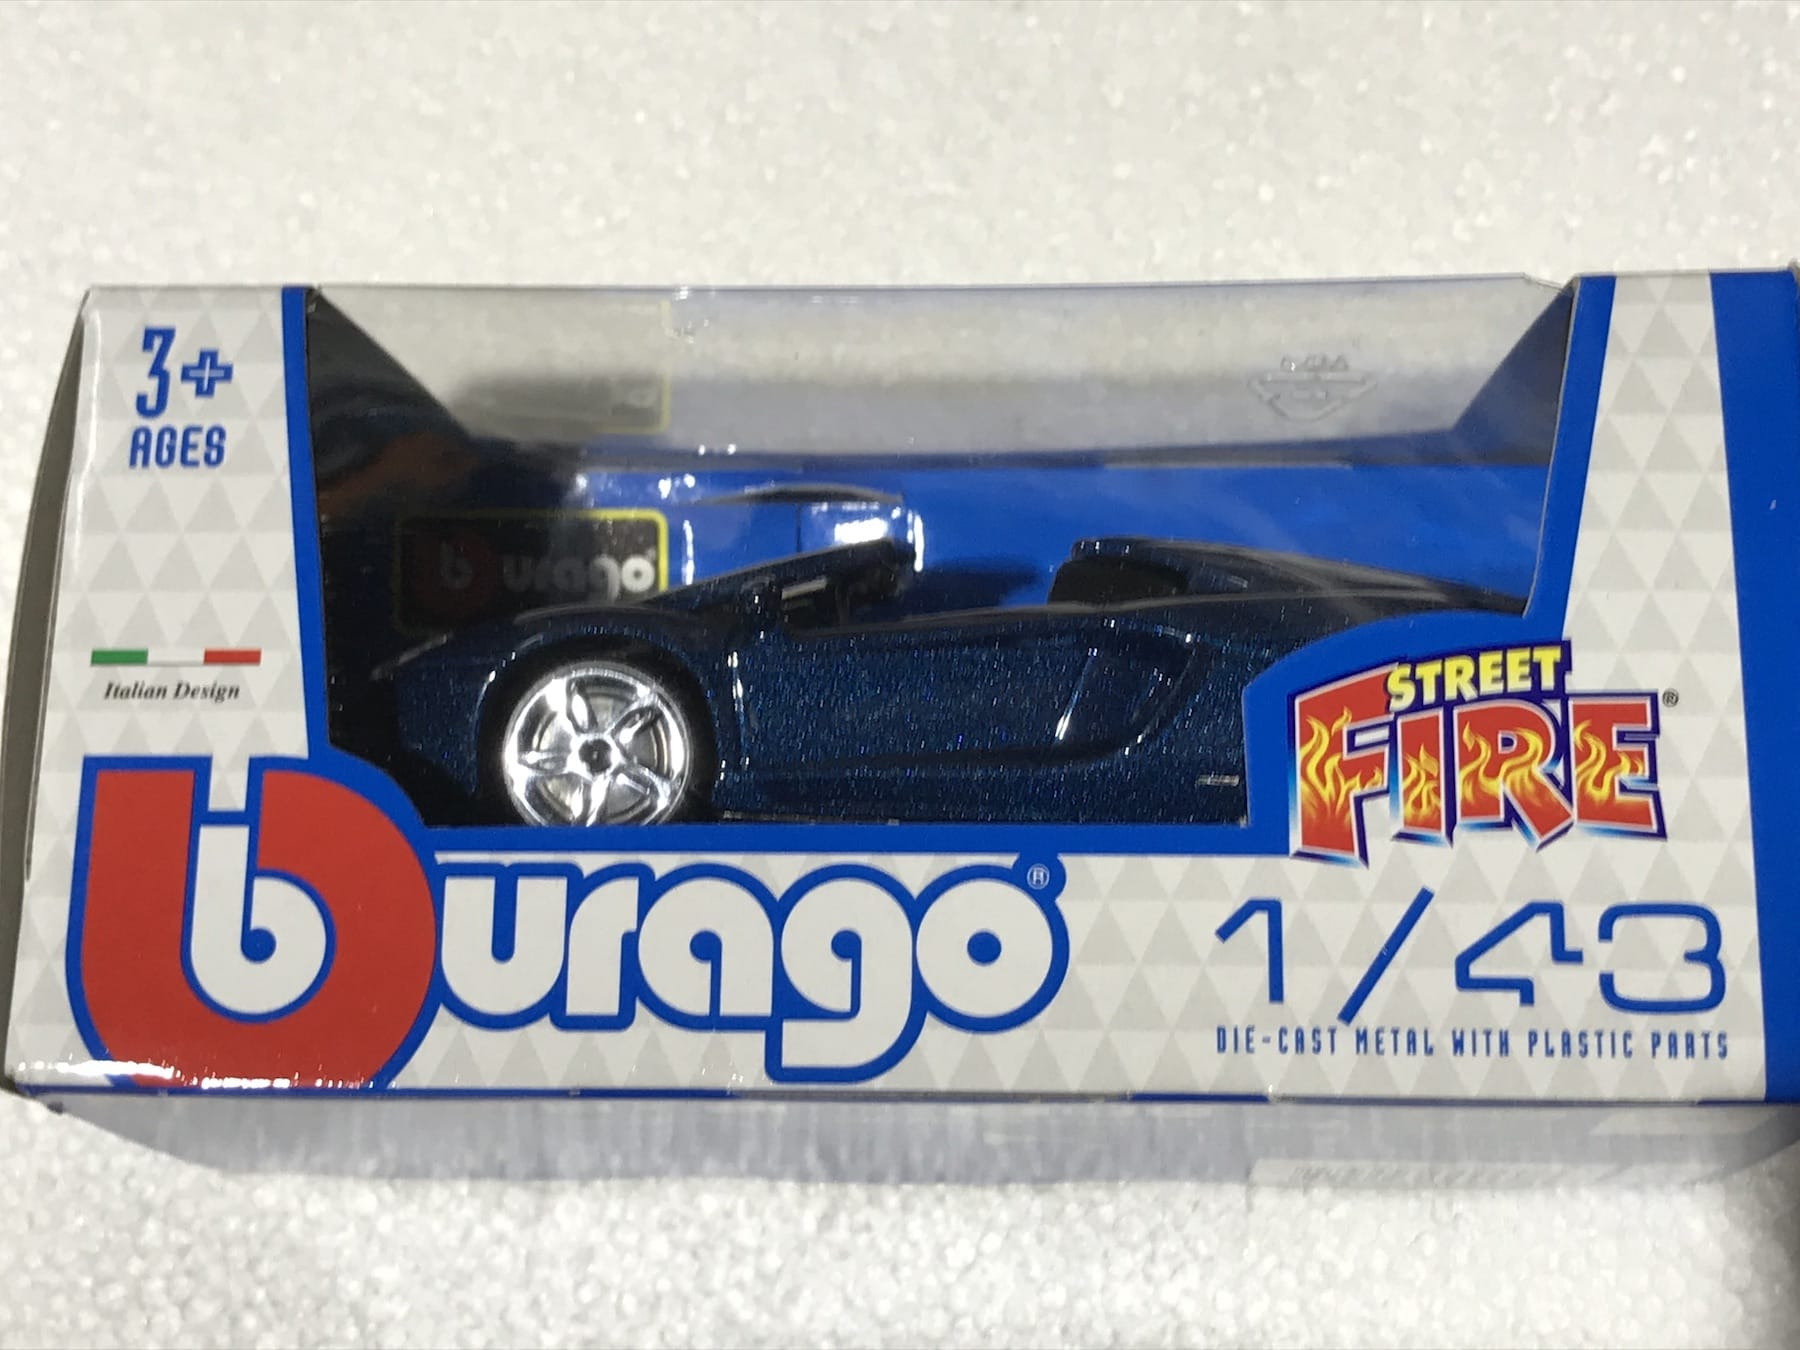 Lamborghini Blue Street Fire 1:43 Scale Model Car Toy Childs Kids Dads Enthusiasts Collectors Gift Present